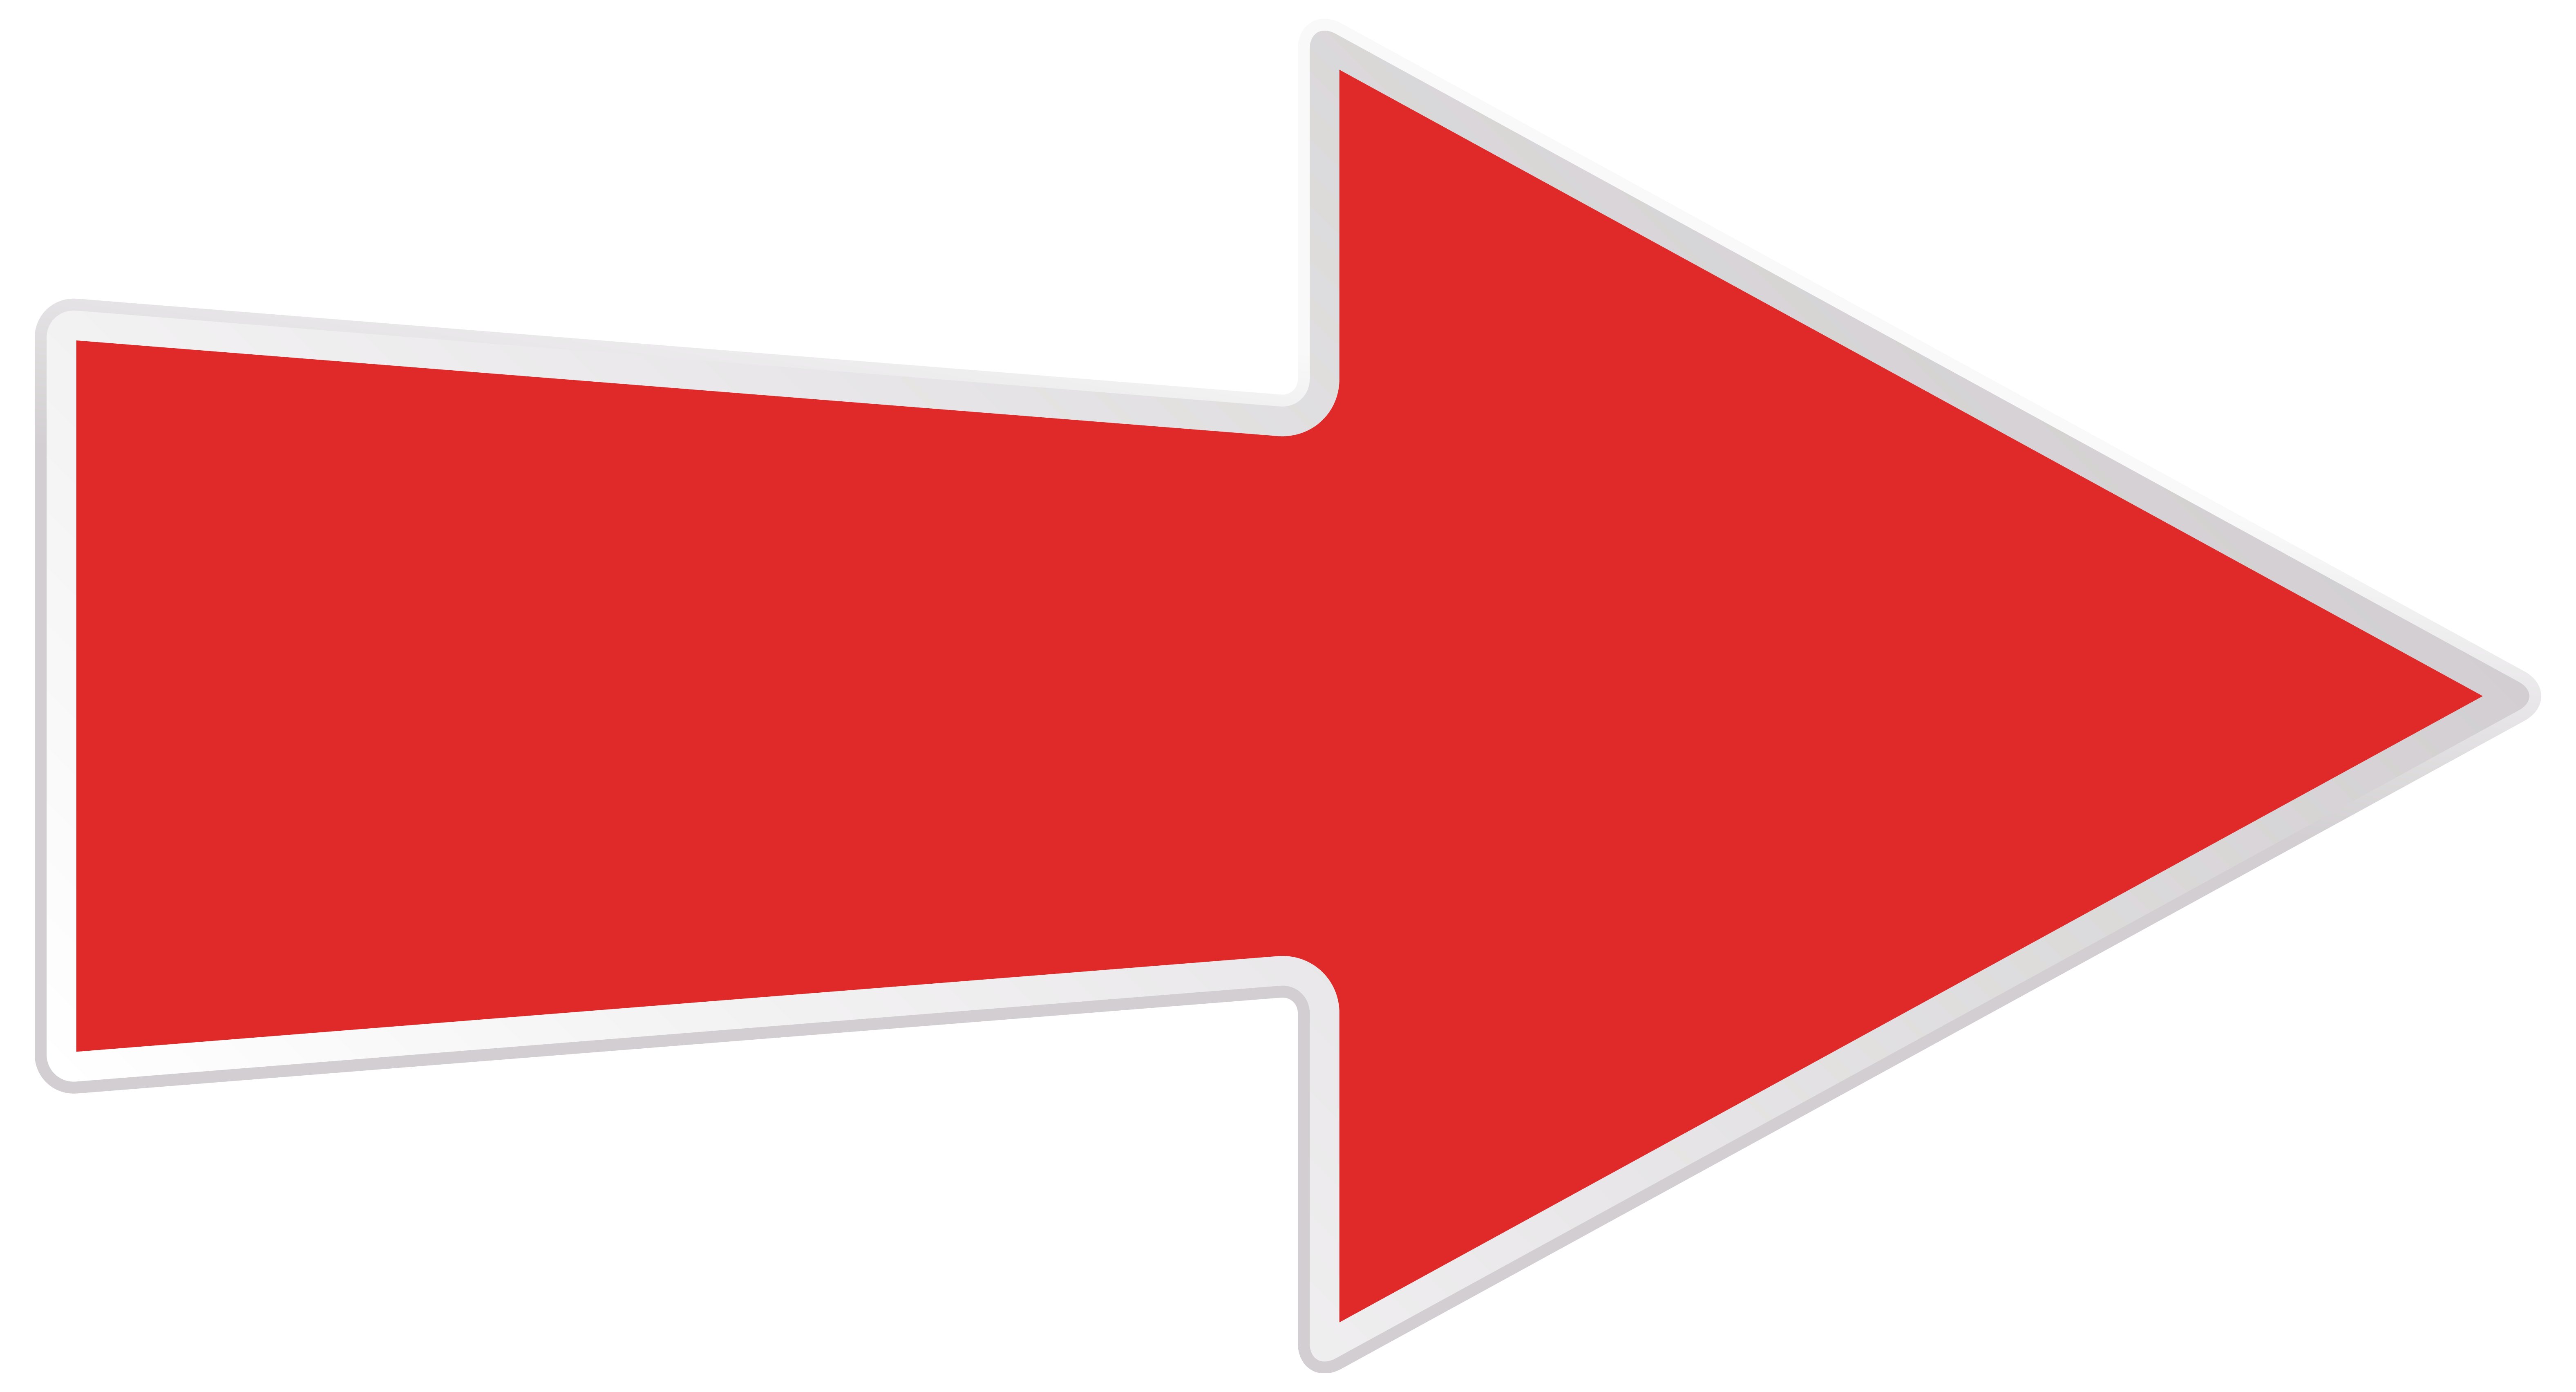 Red Right Arrow Transparent Png Clip Art Image Gallery Yopriceville High Quality Images And Transparent Png Free Clipart Clip Art Art Images Free Clip Art